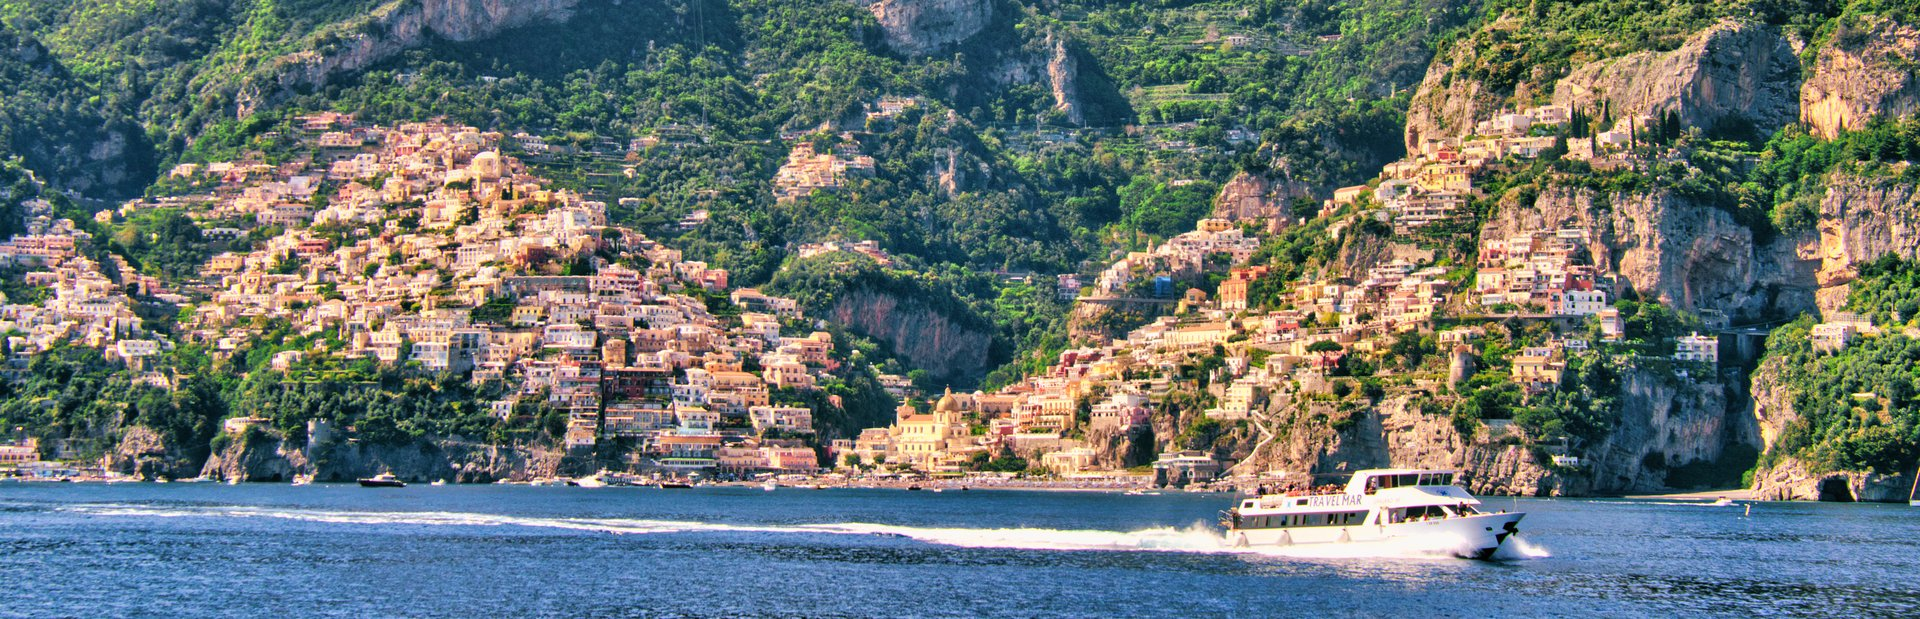 Things to see & do inPositano